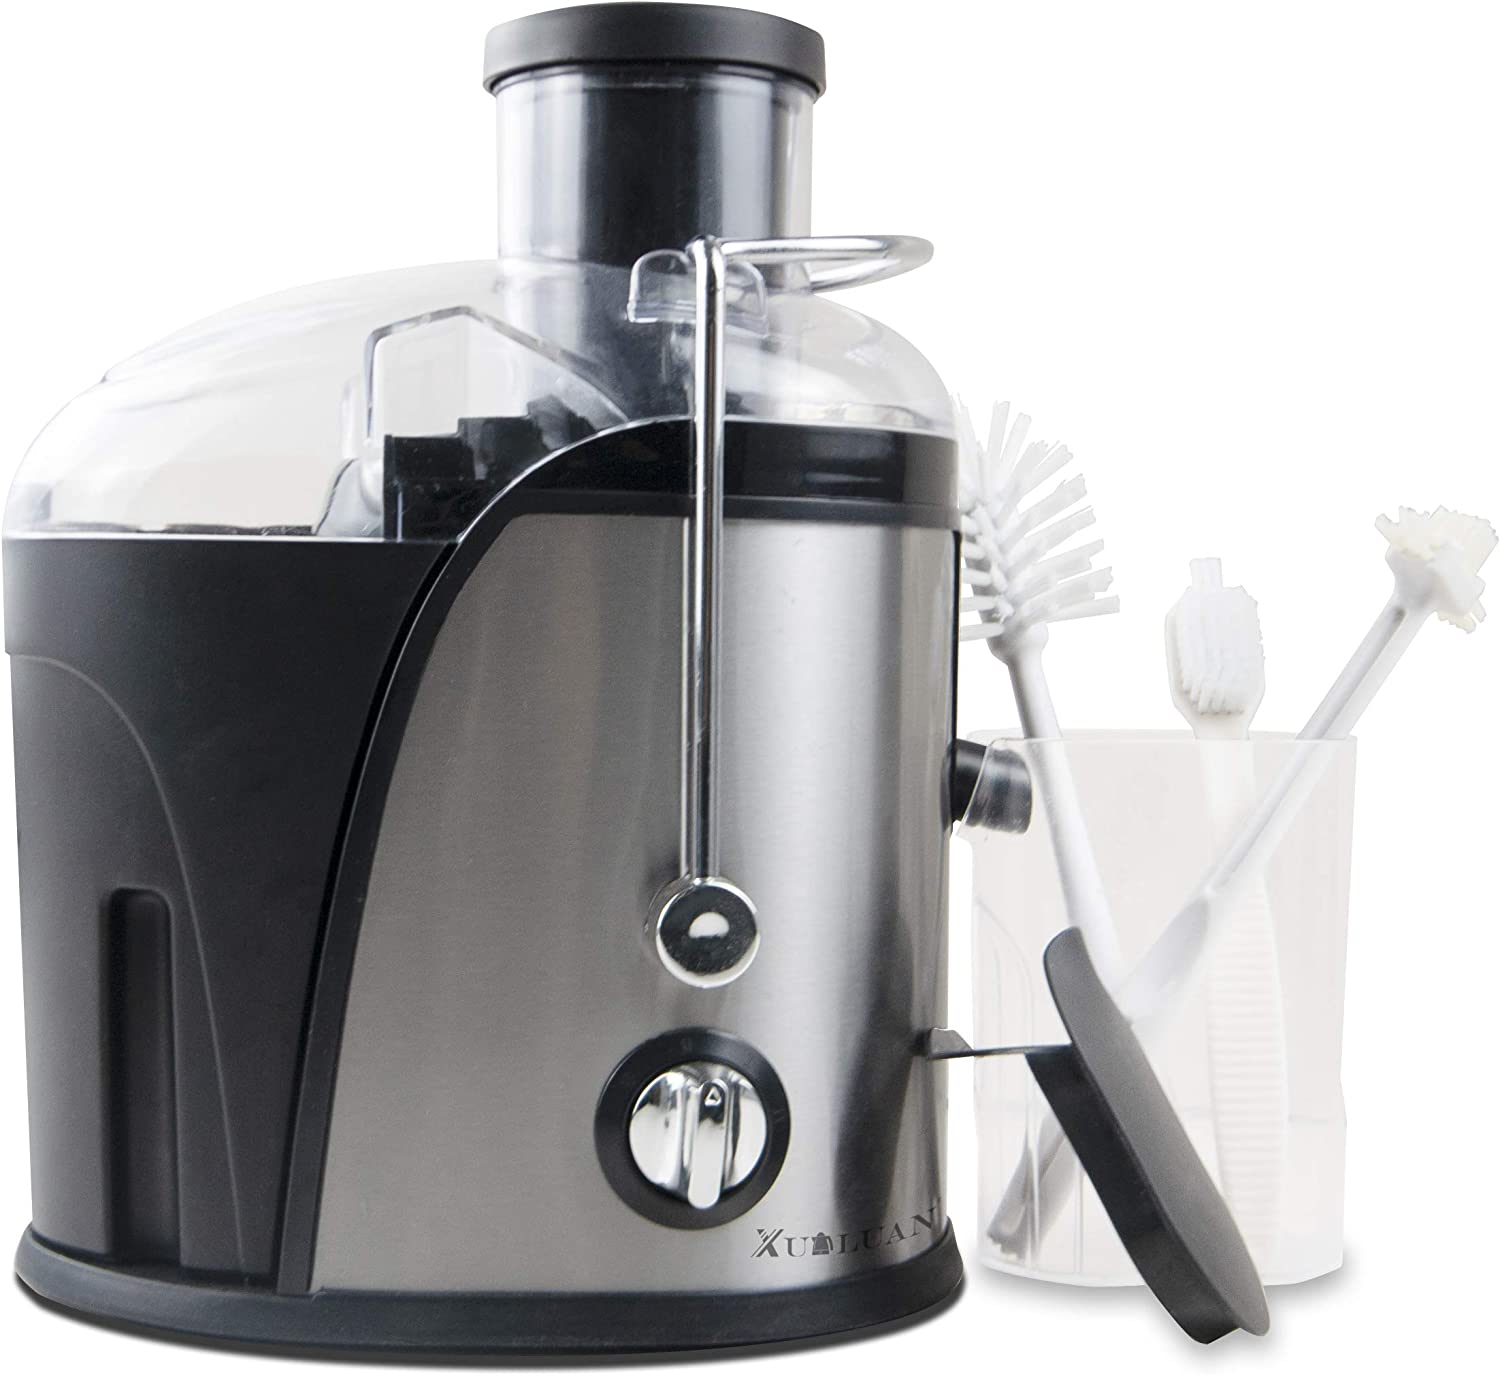 XUALUAN Masticating Juicer Machines and 3 pcs Cleaning Brush - 3 Speed Extractor for 95% High Juice Yield - 400W Energy Saving Juicer and Easy to Clean - Suitable for Fruits and Vegetables